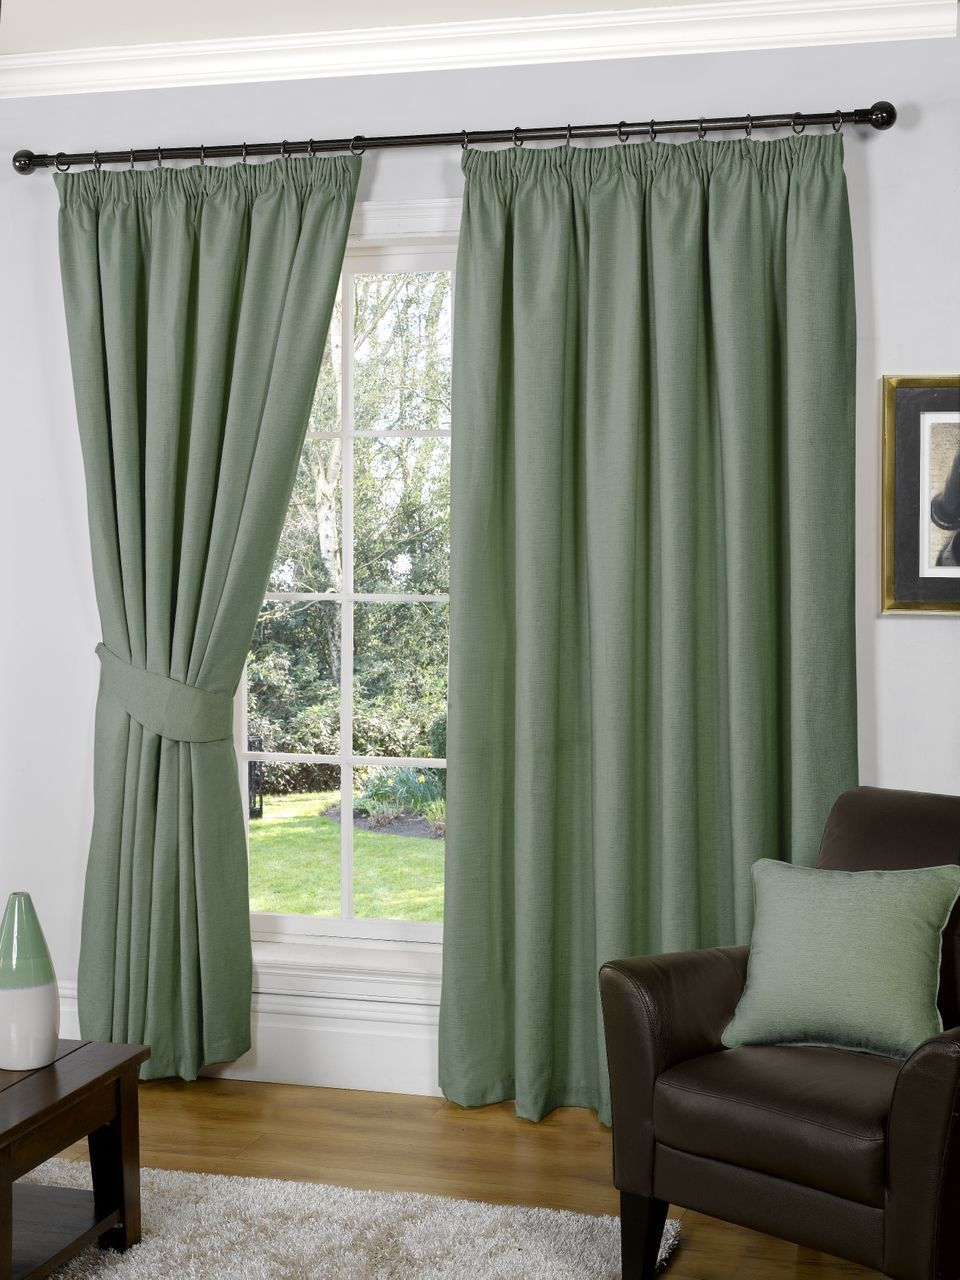 Heavy Lined Curtains In Heavy Lined Curtains (Image 5 of 15)